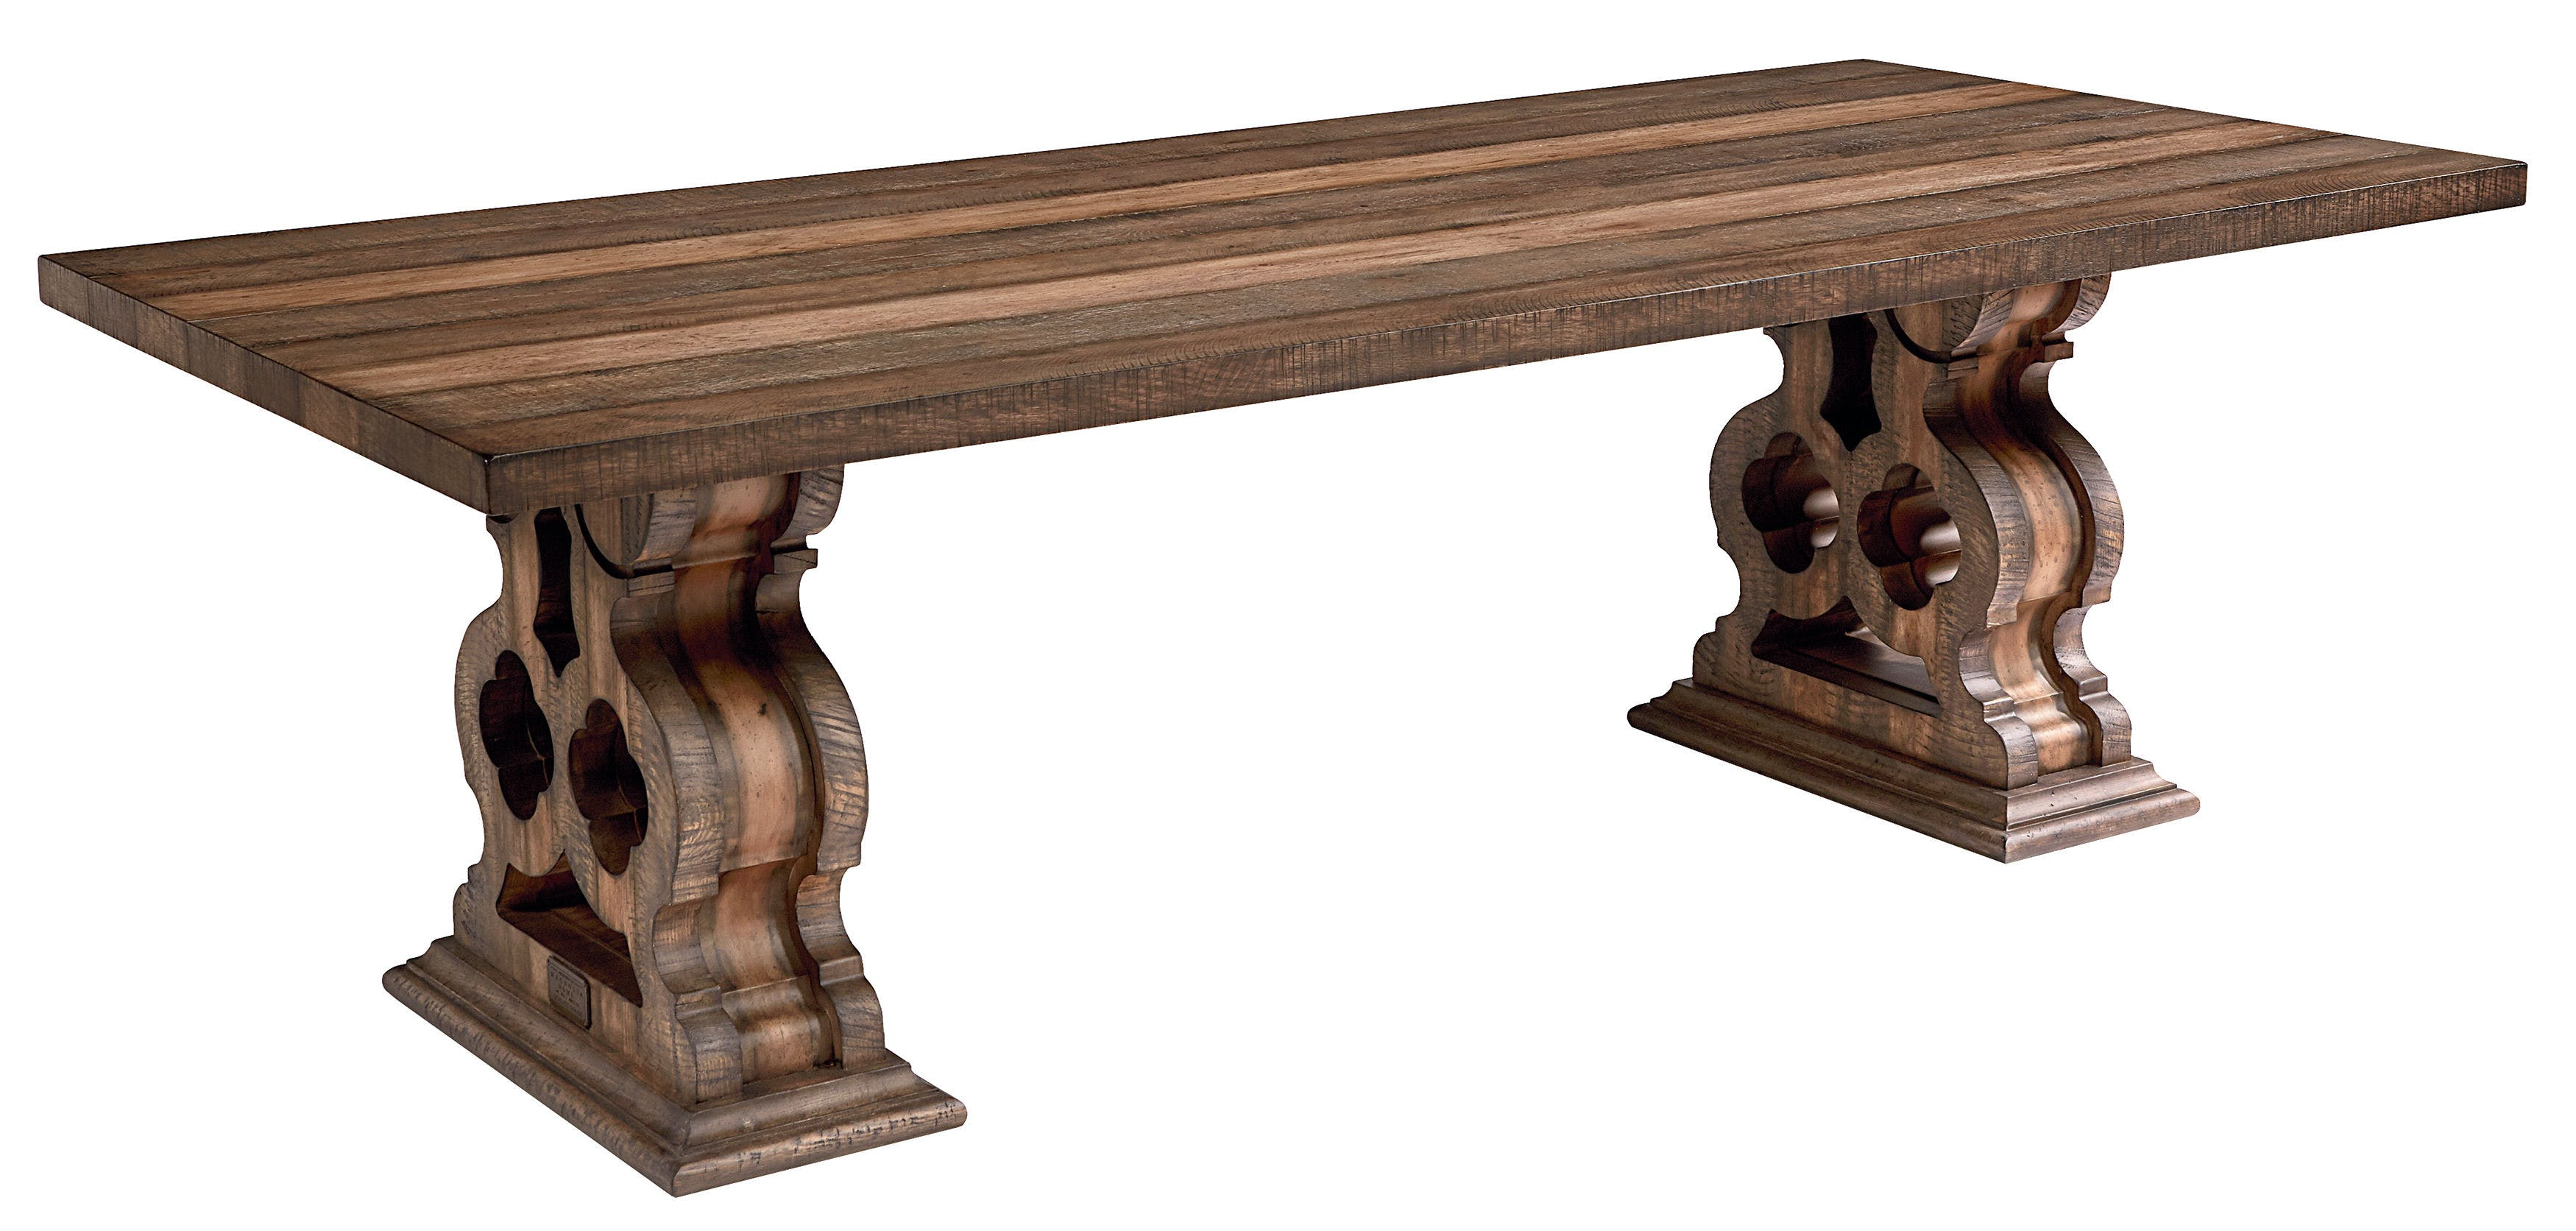 Dining Room Magnolia Home - Double Pedestal Dining Table